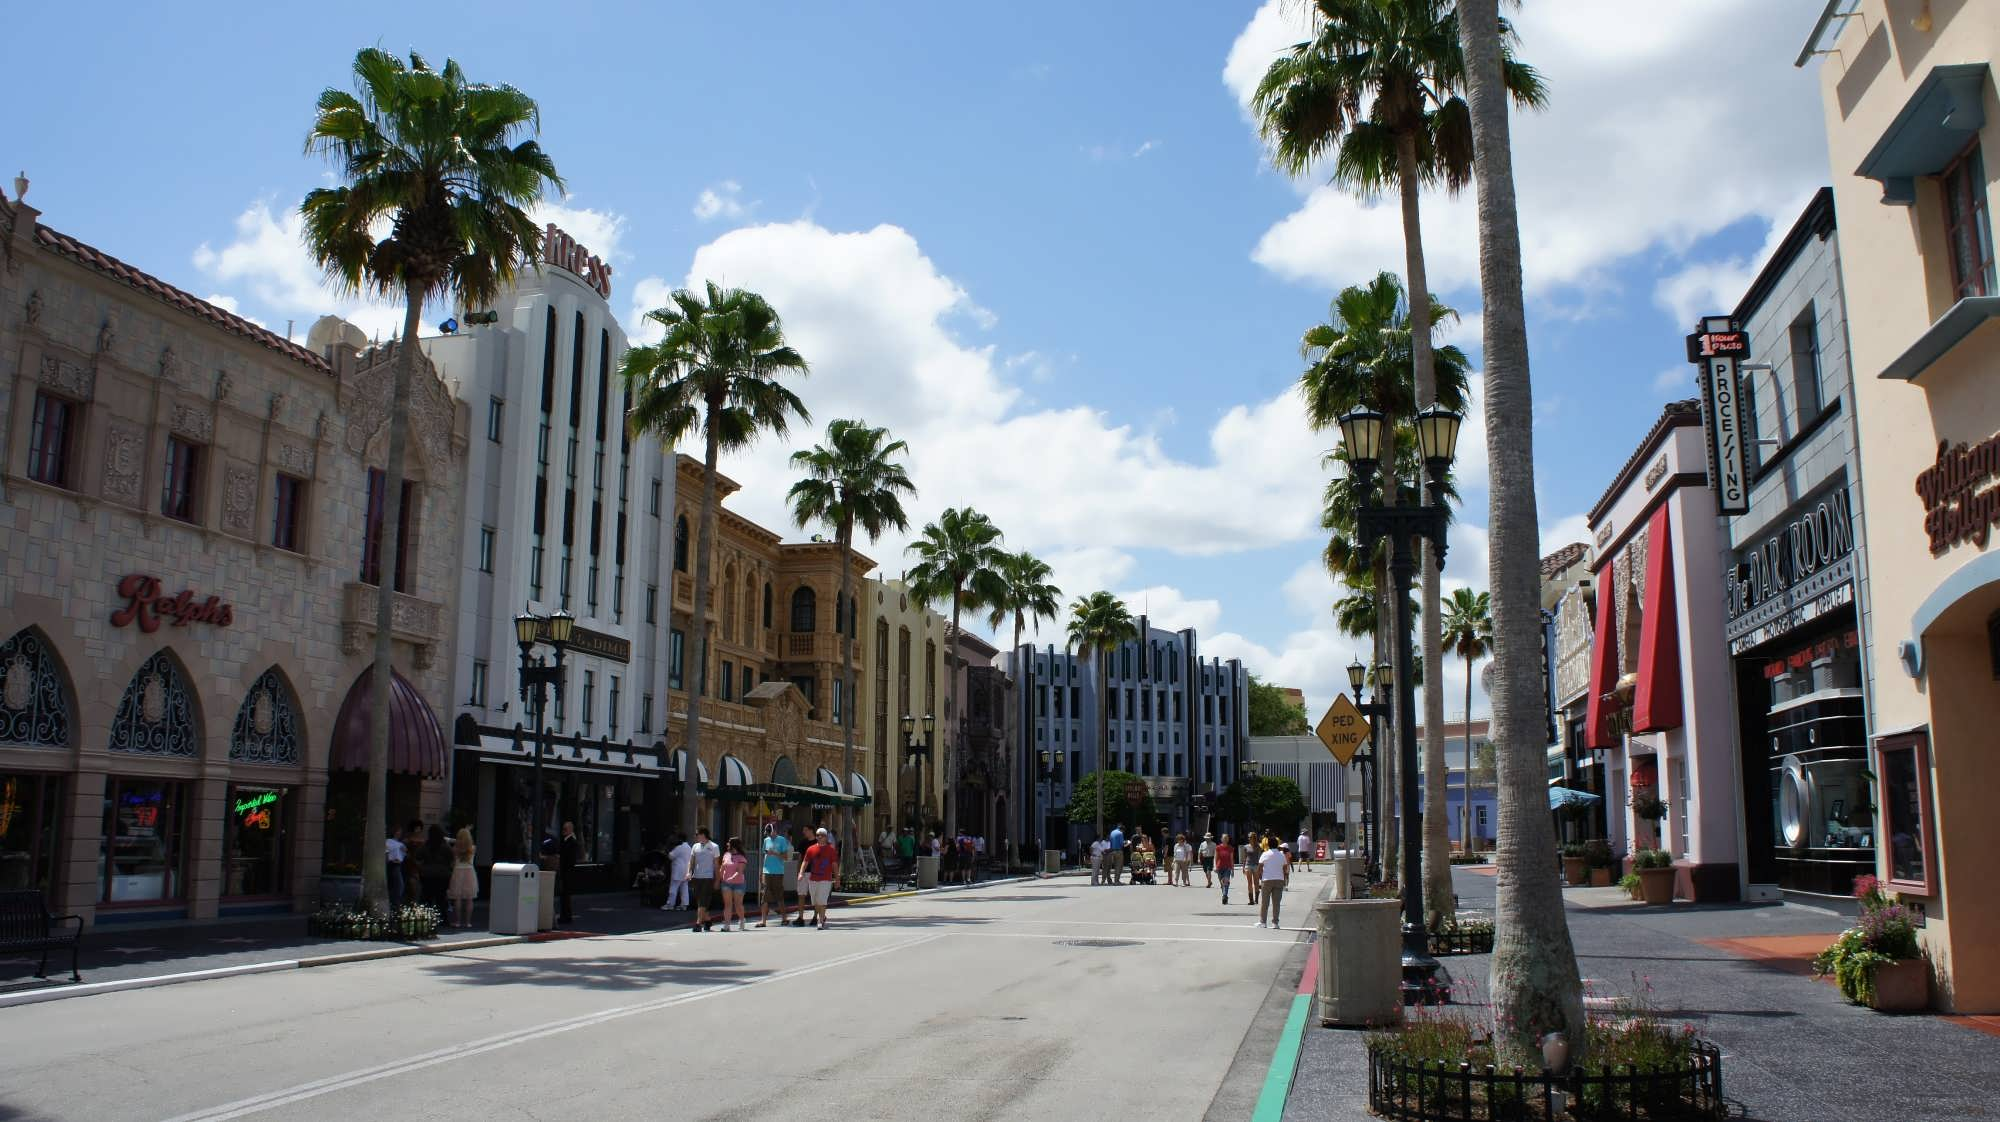 Hollywood-style facades line the streets of this land